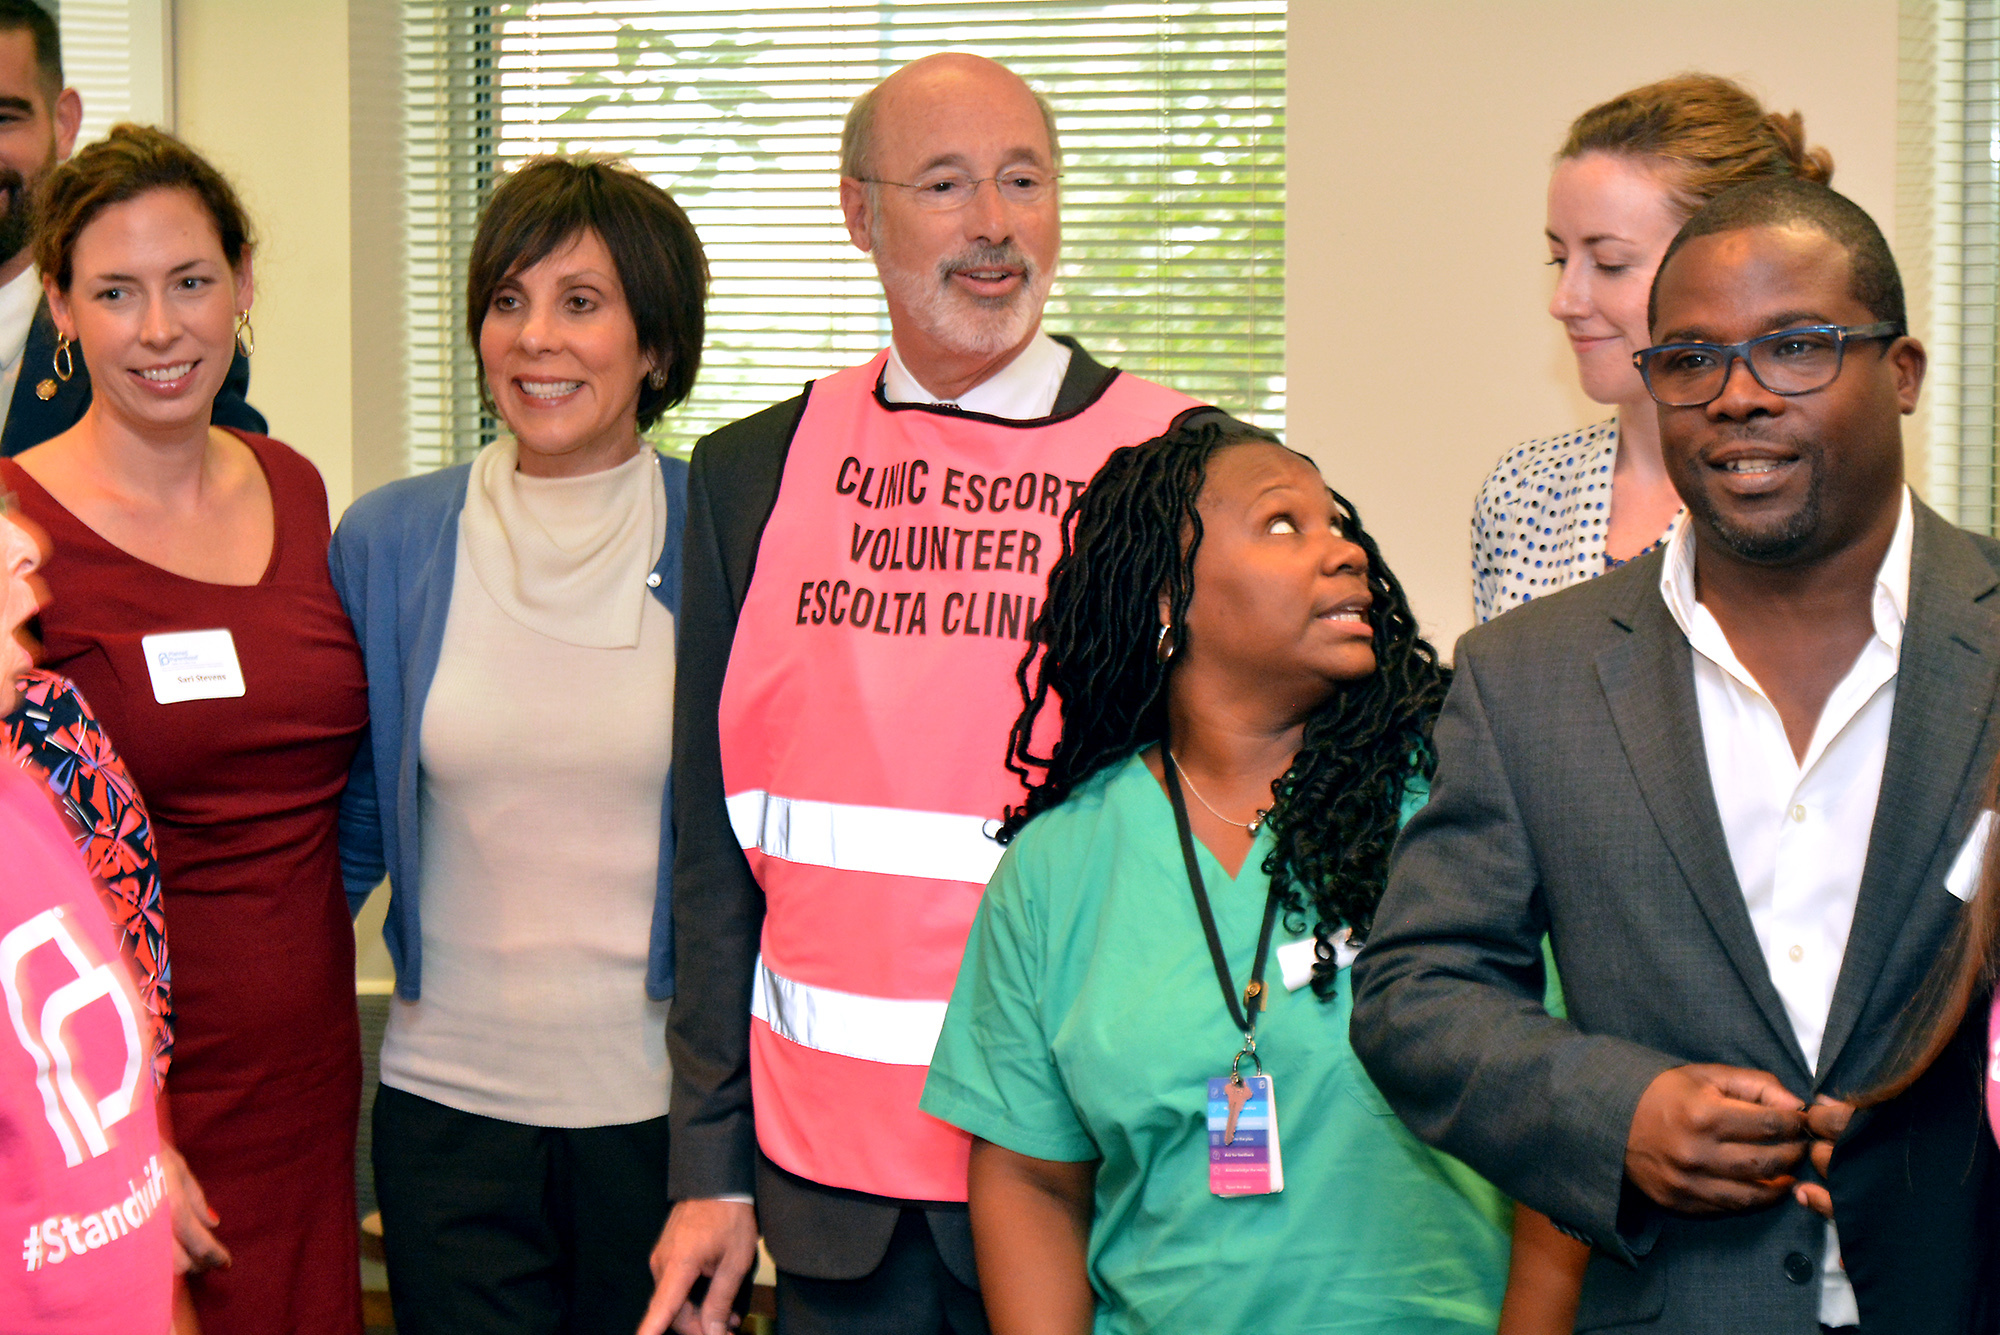 Gov. Tom Wolf, center, wears a clinic escort volunteer vest while posing for a picture with Planned Parenthood Southeastern Pa. staff, patient advocates and volunteer leaders of the Elizabeth Blackwell Health Center at Locust Street in Philadelphia.